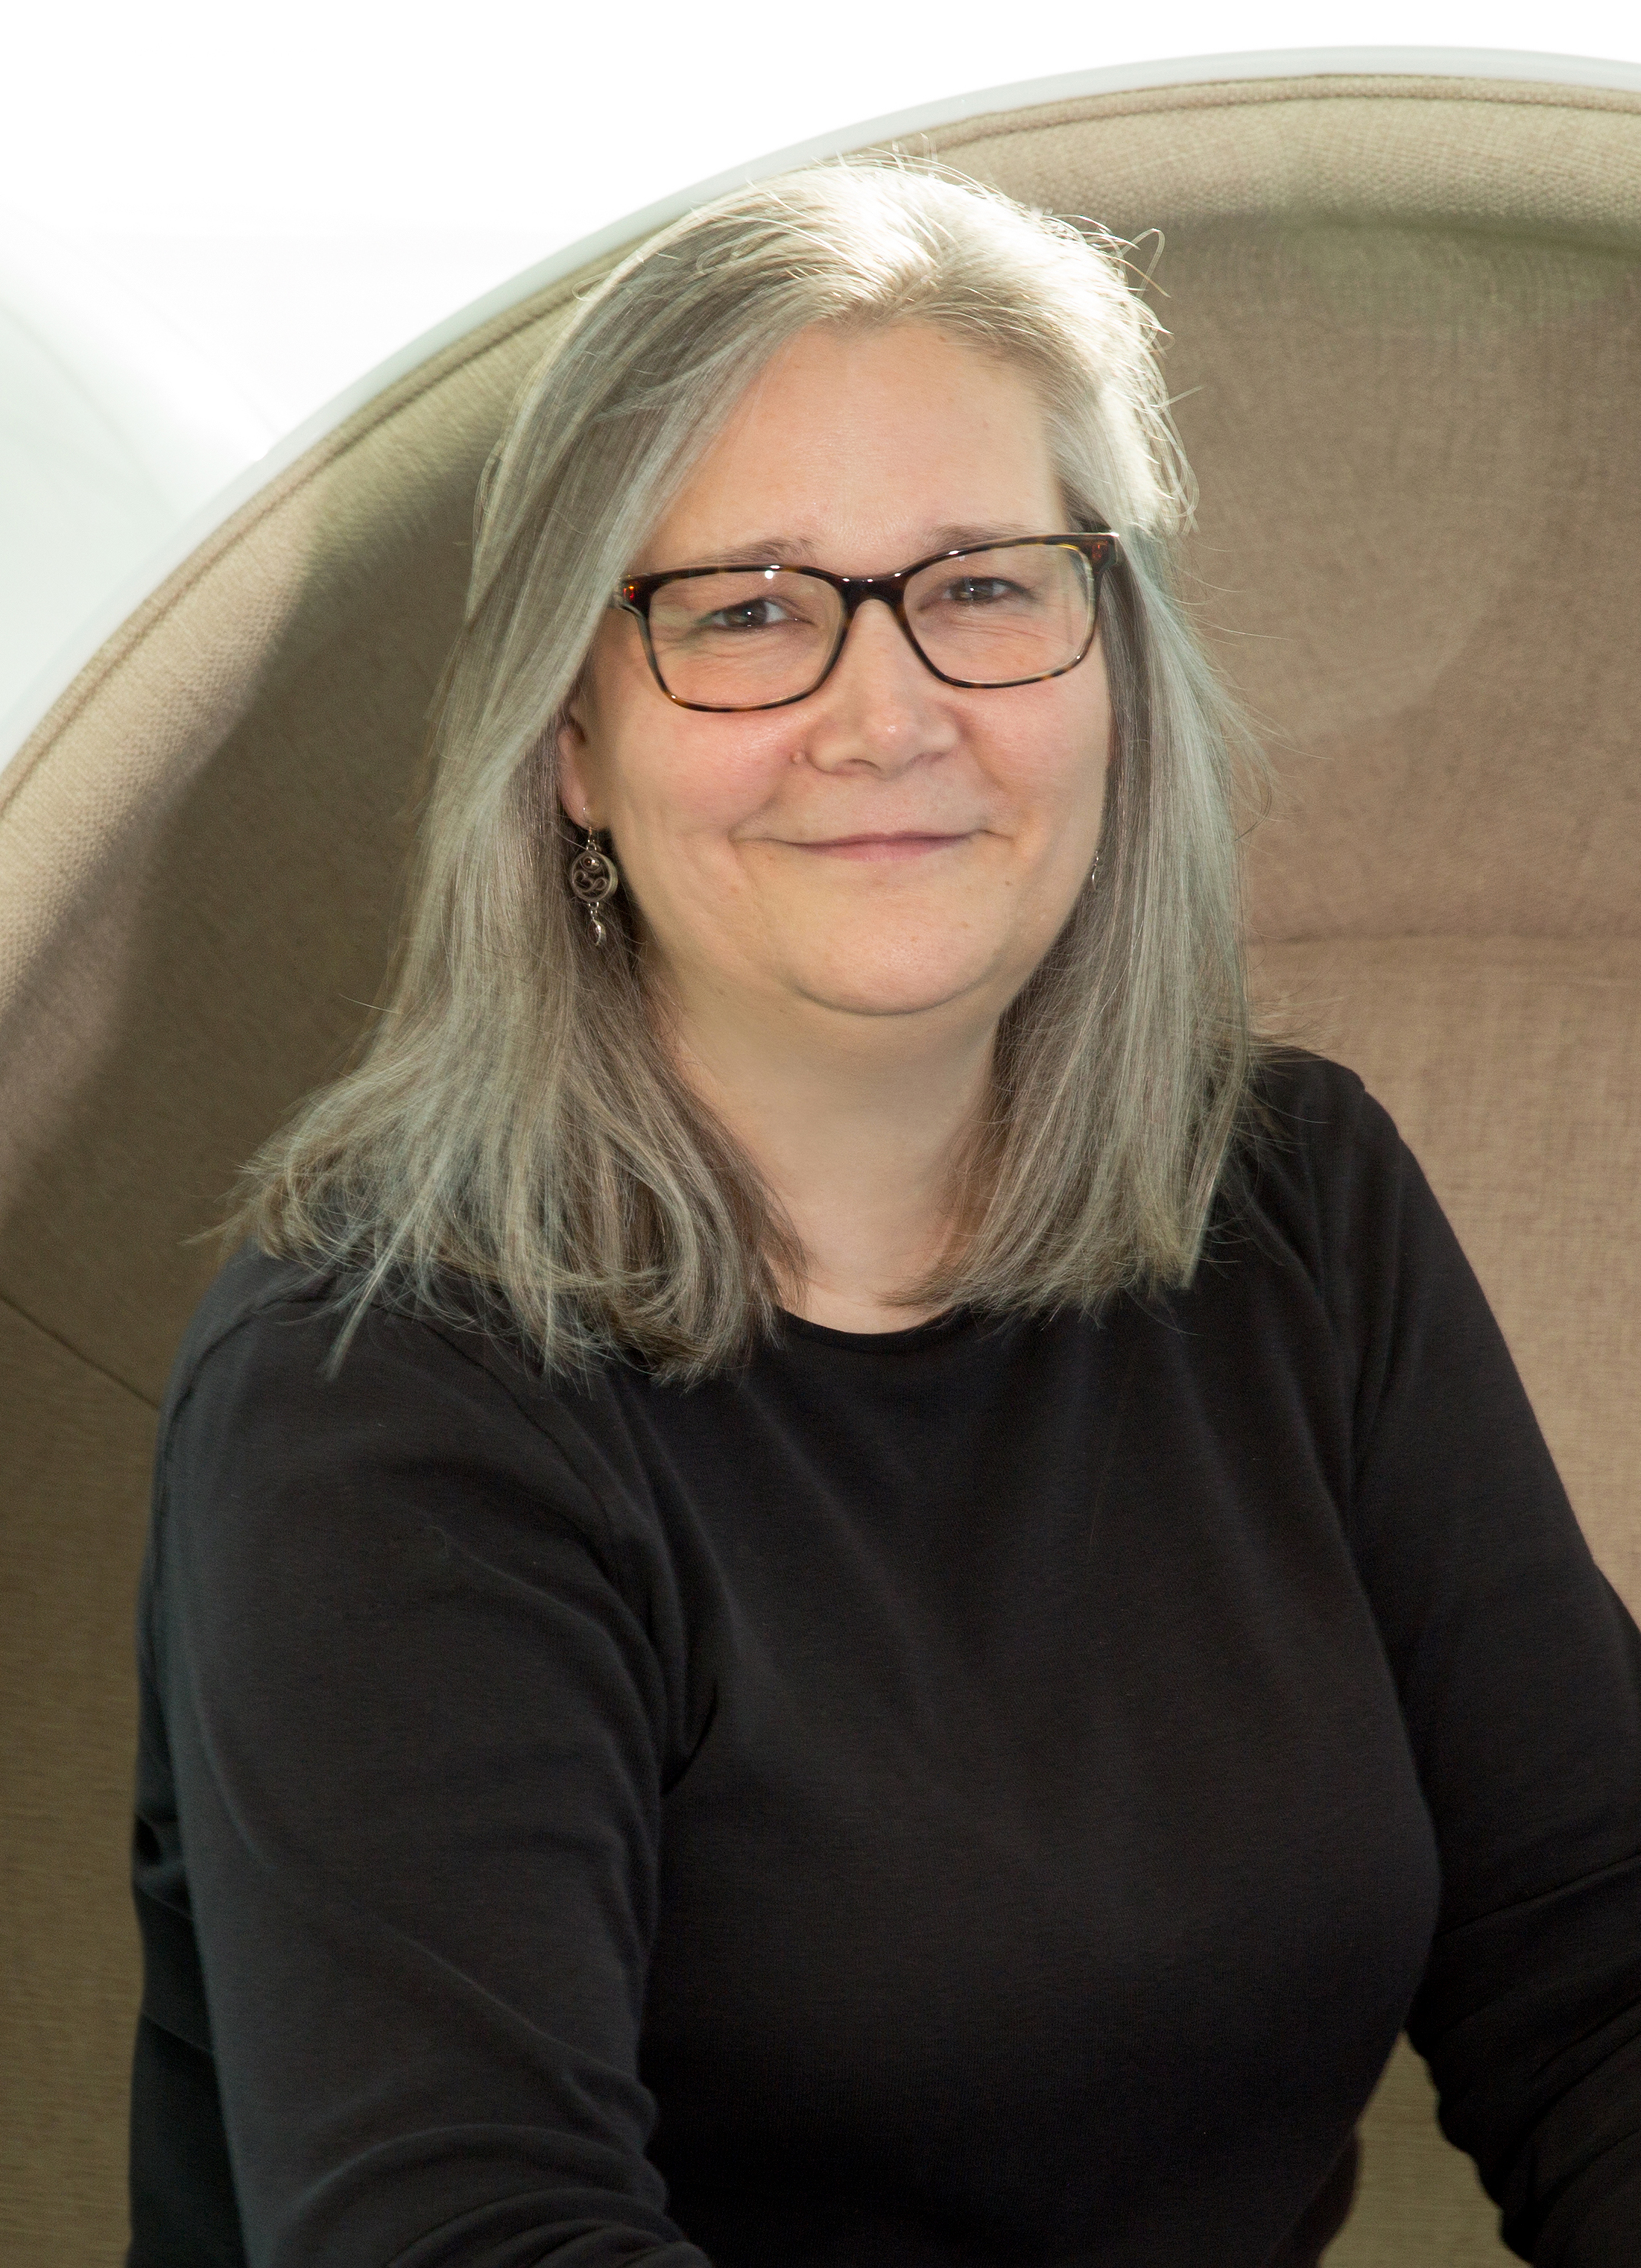 A photo of Amy Hennig